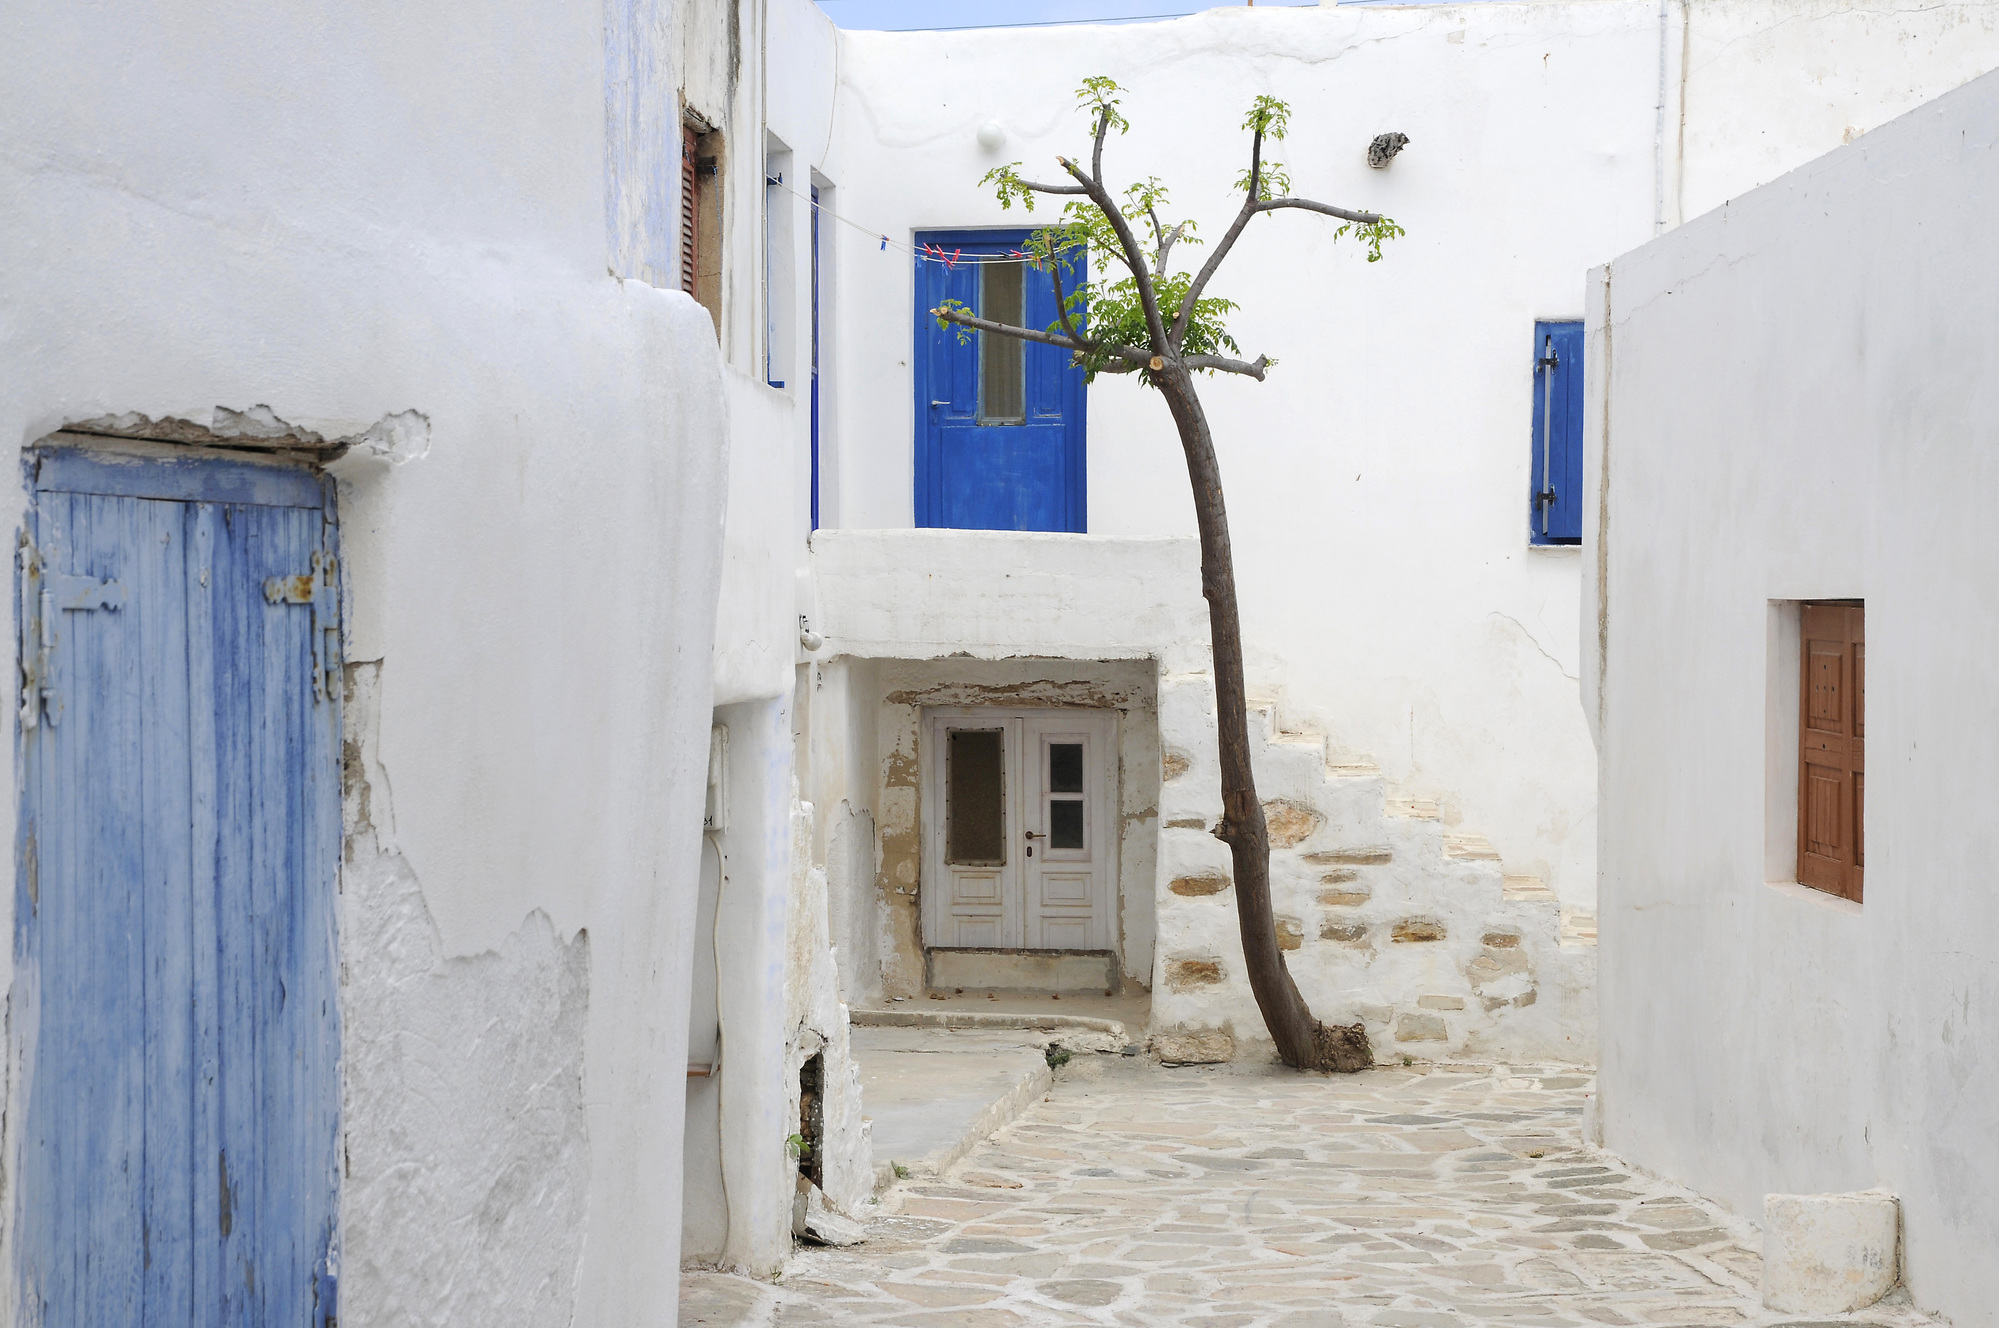 Antiparos - Kastro (1) | Paros | Pictures | Greece in Global-Geography